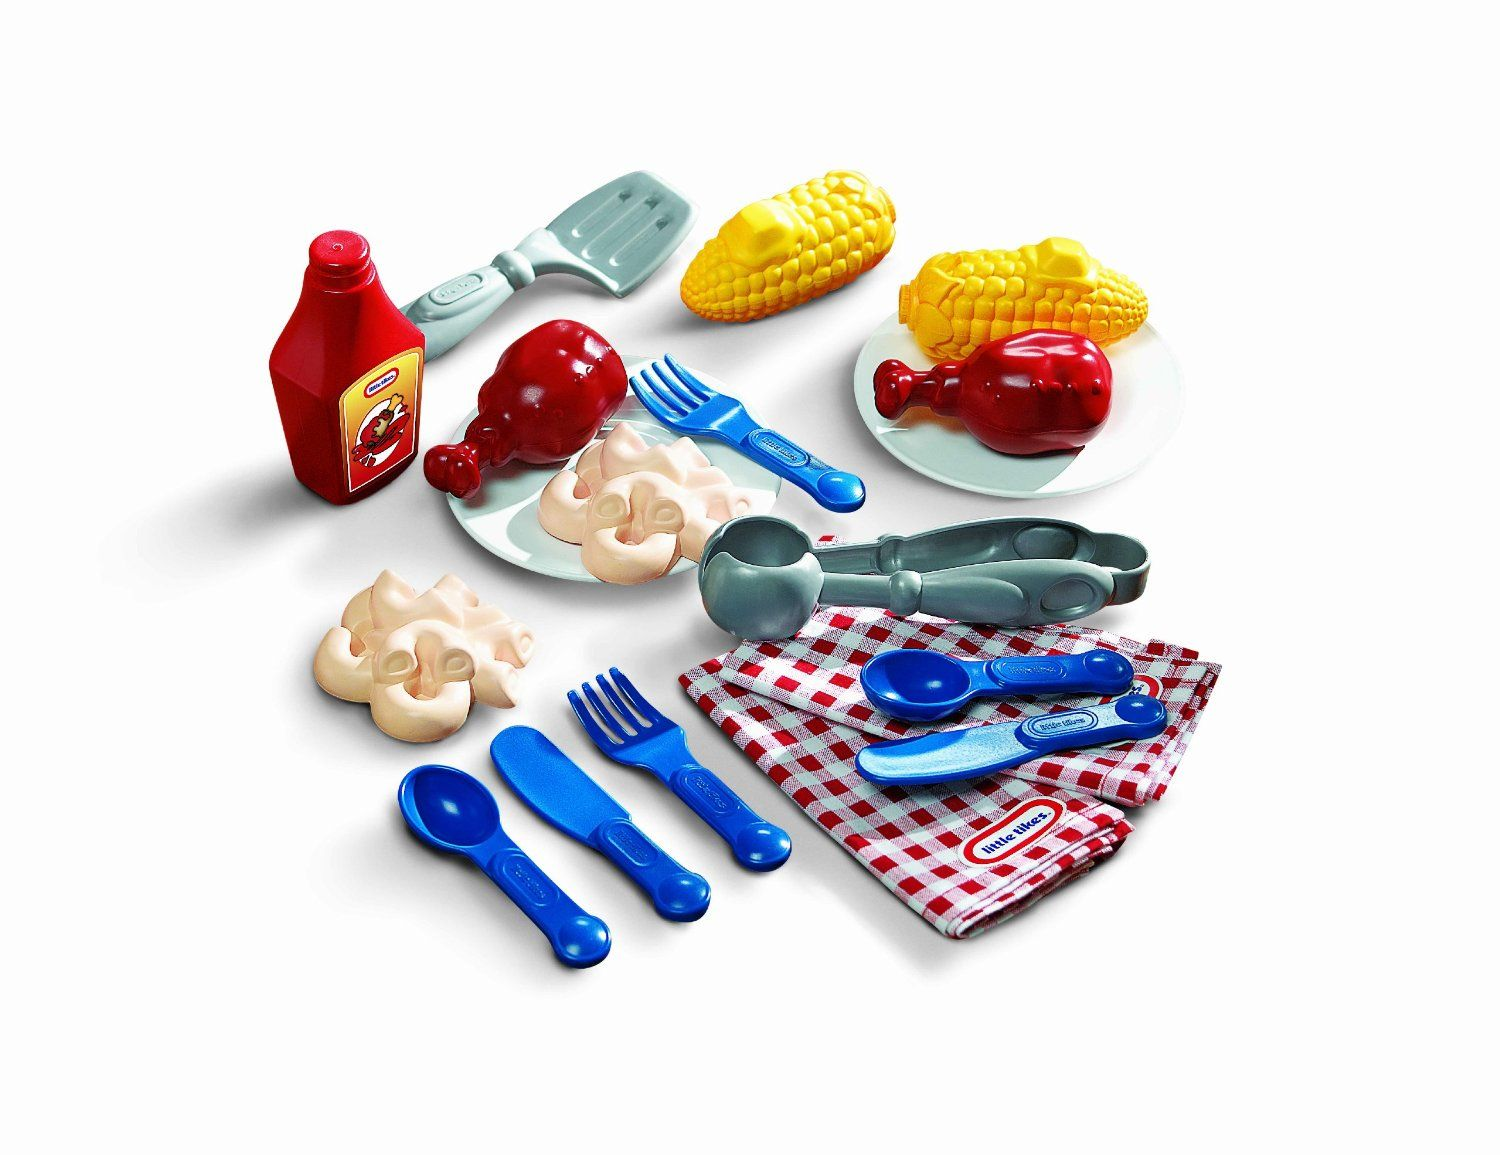 Food And Cooking At Toys R Us : Little tikes backyard barbeque backyard picnic bbq recipes